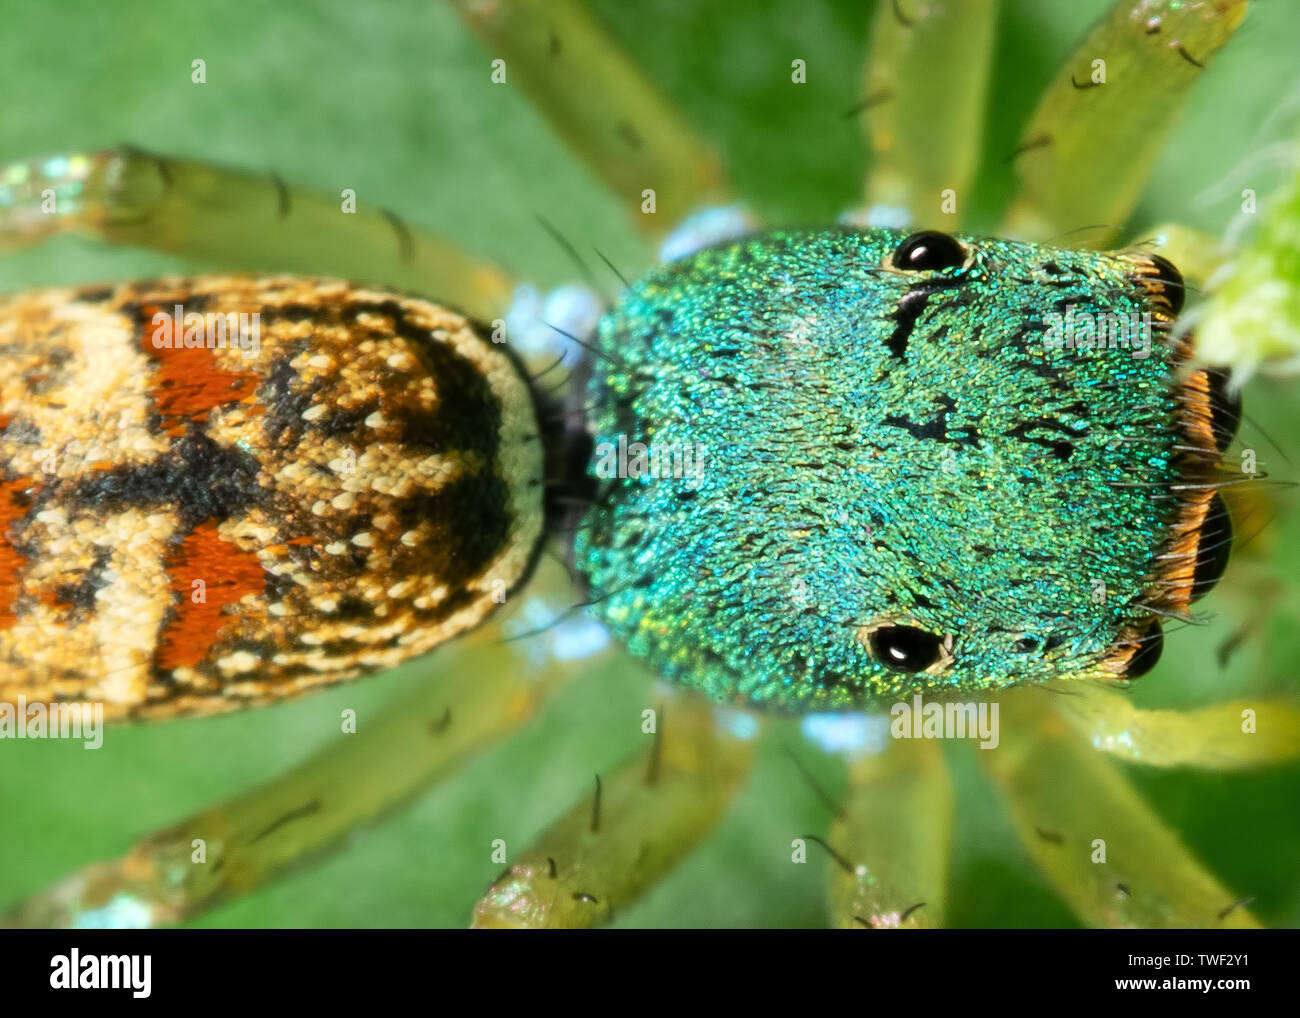 Macro Photography of Colorful Jumping Spider on Green Leaf - Stock Image